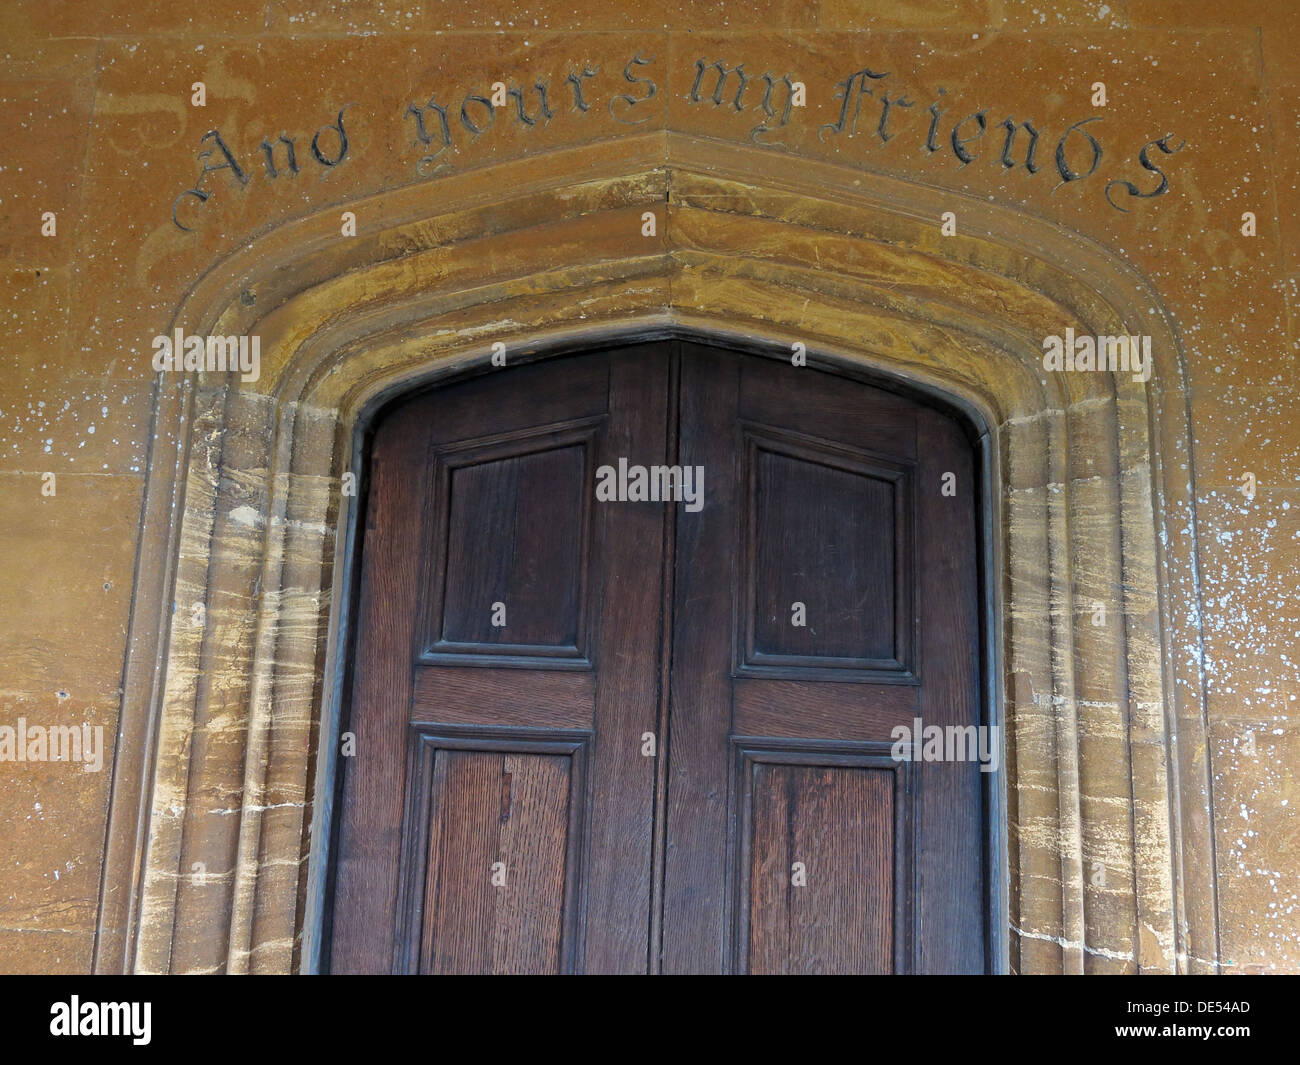 'And Yours My Friends', inscription in Montecute, Somerset, England, UK - Stock Image